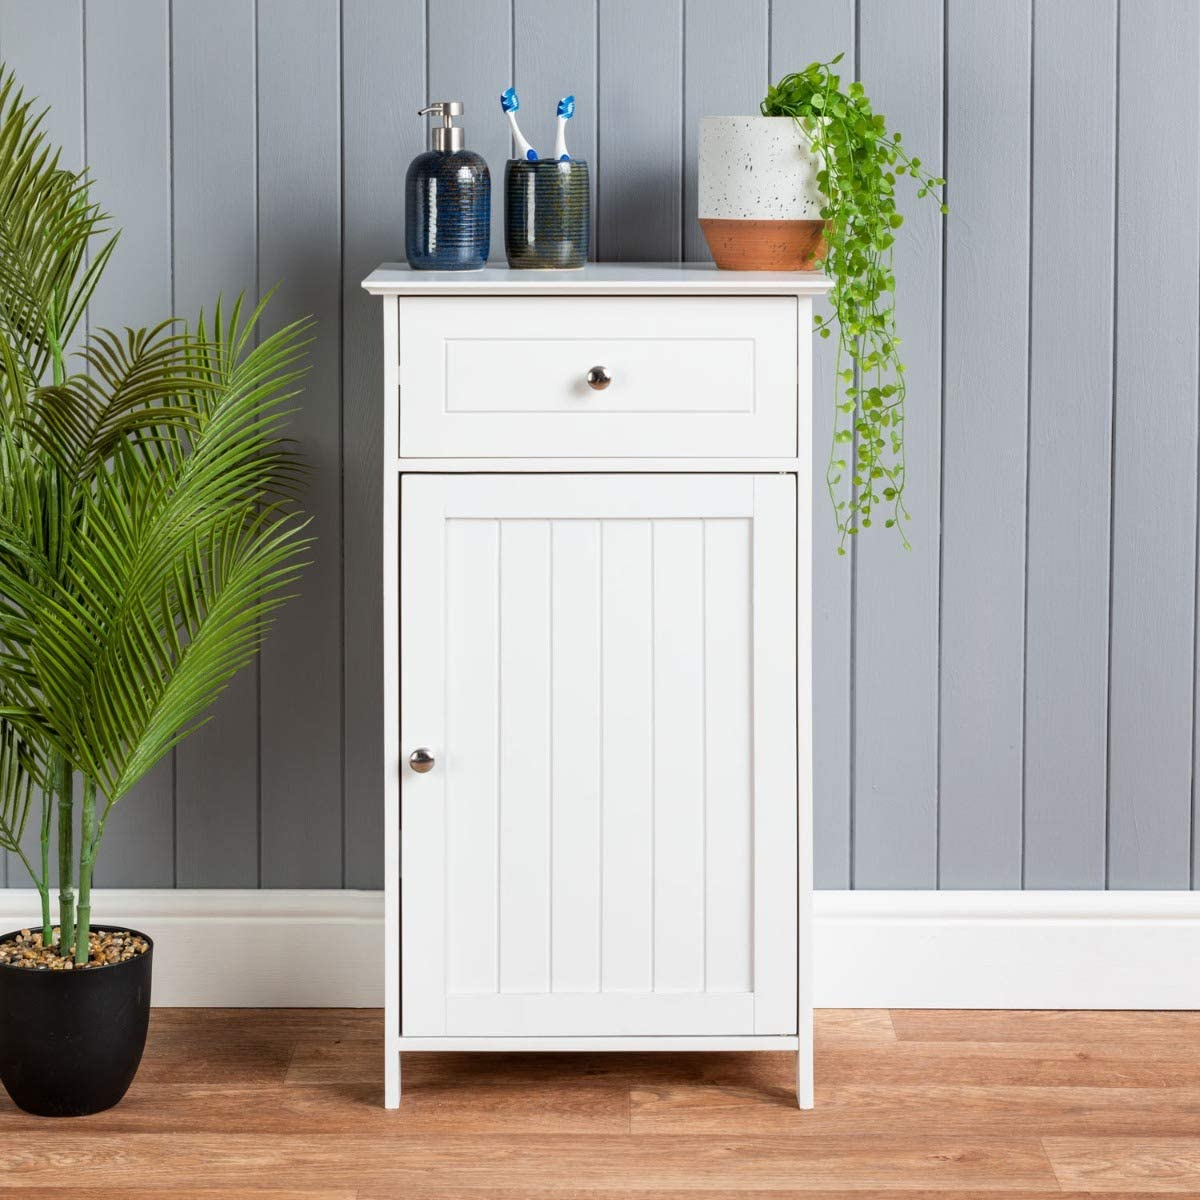 CHRISTOW White Bathroom Cabinet Floor Standing, Small Wooden Drawer Storage Cupboard Unit With Shelf & Drawer